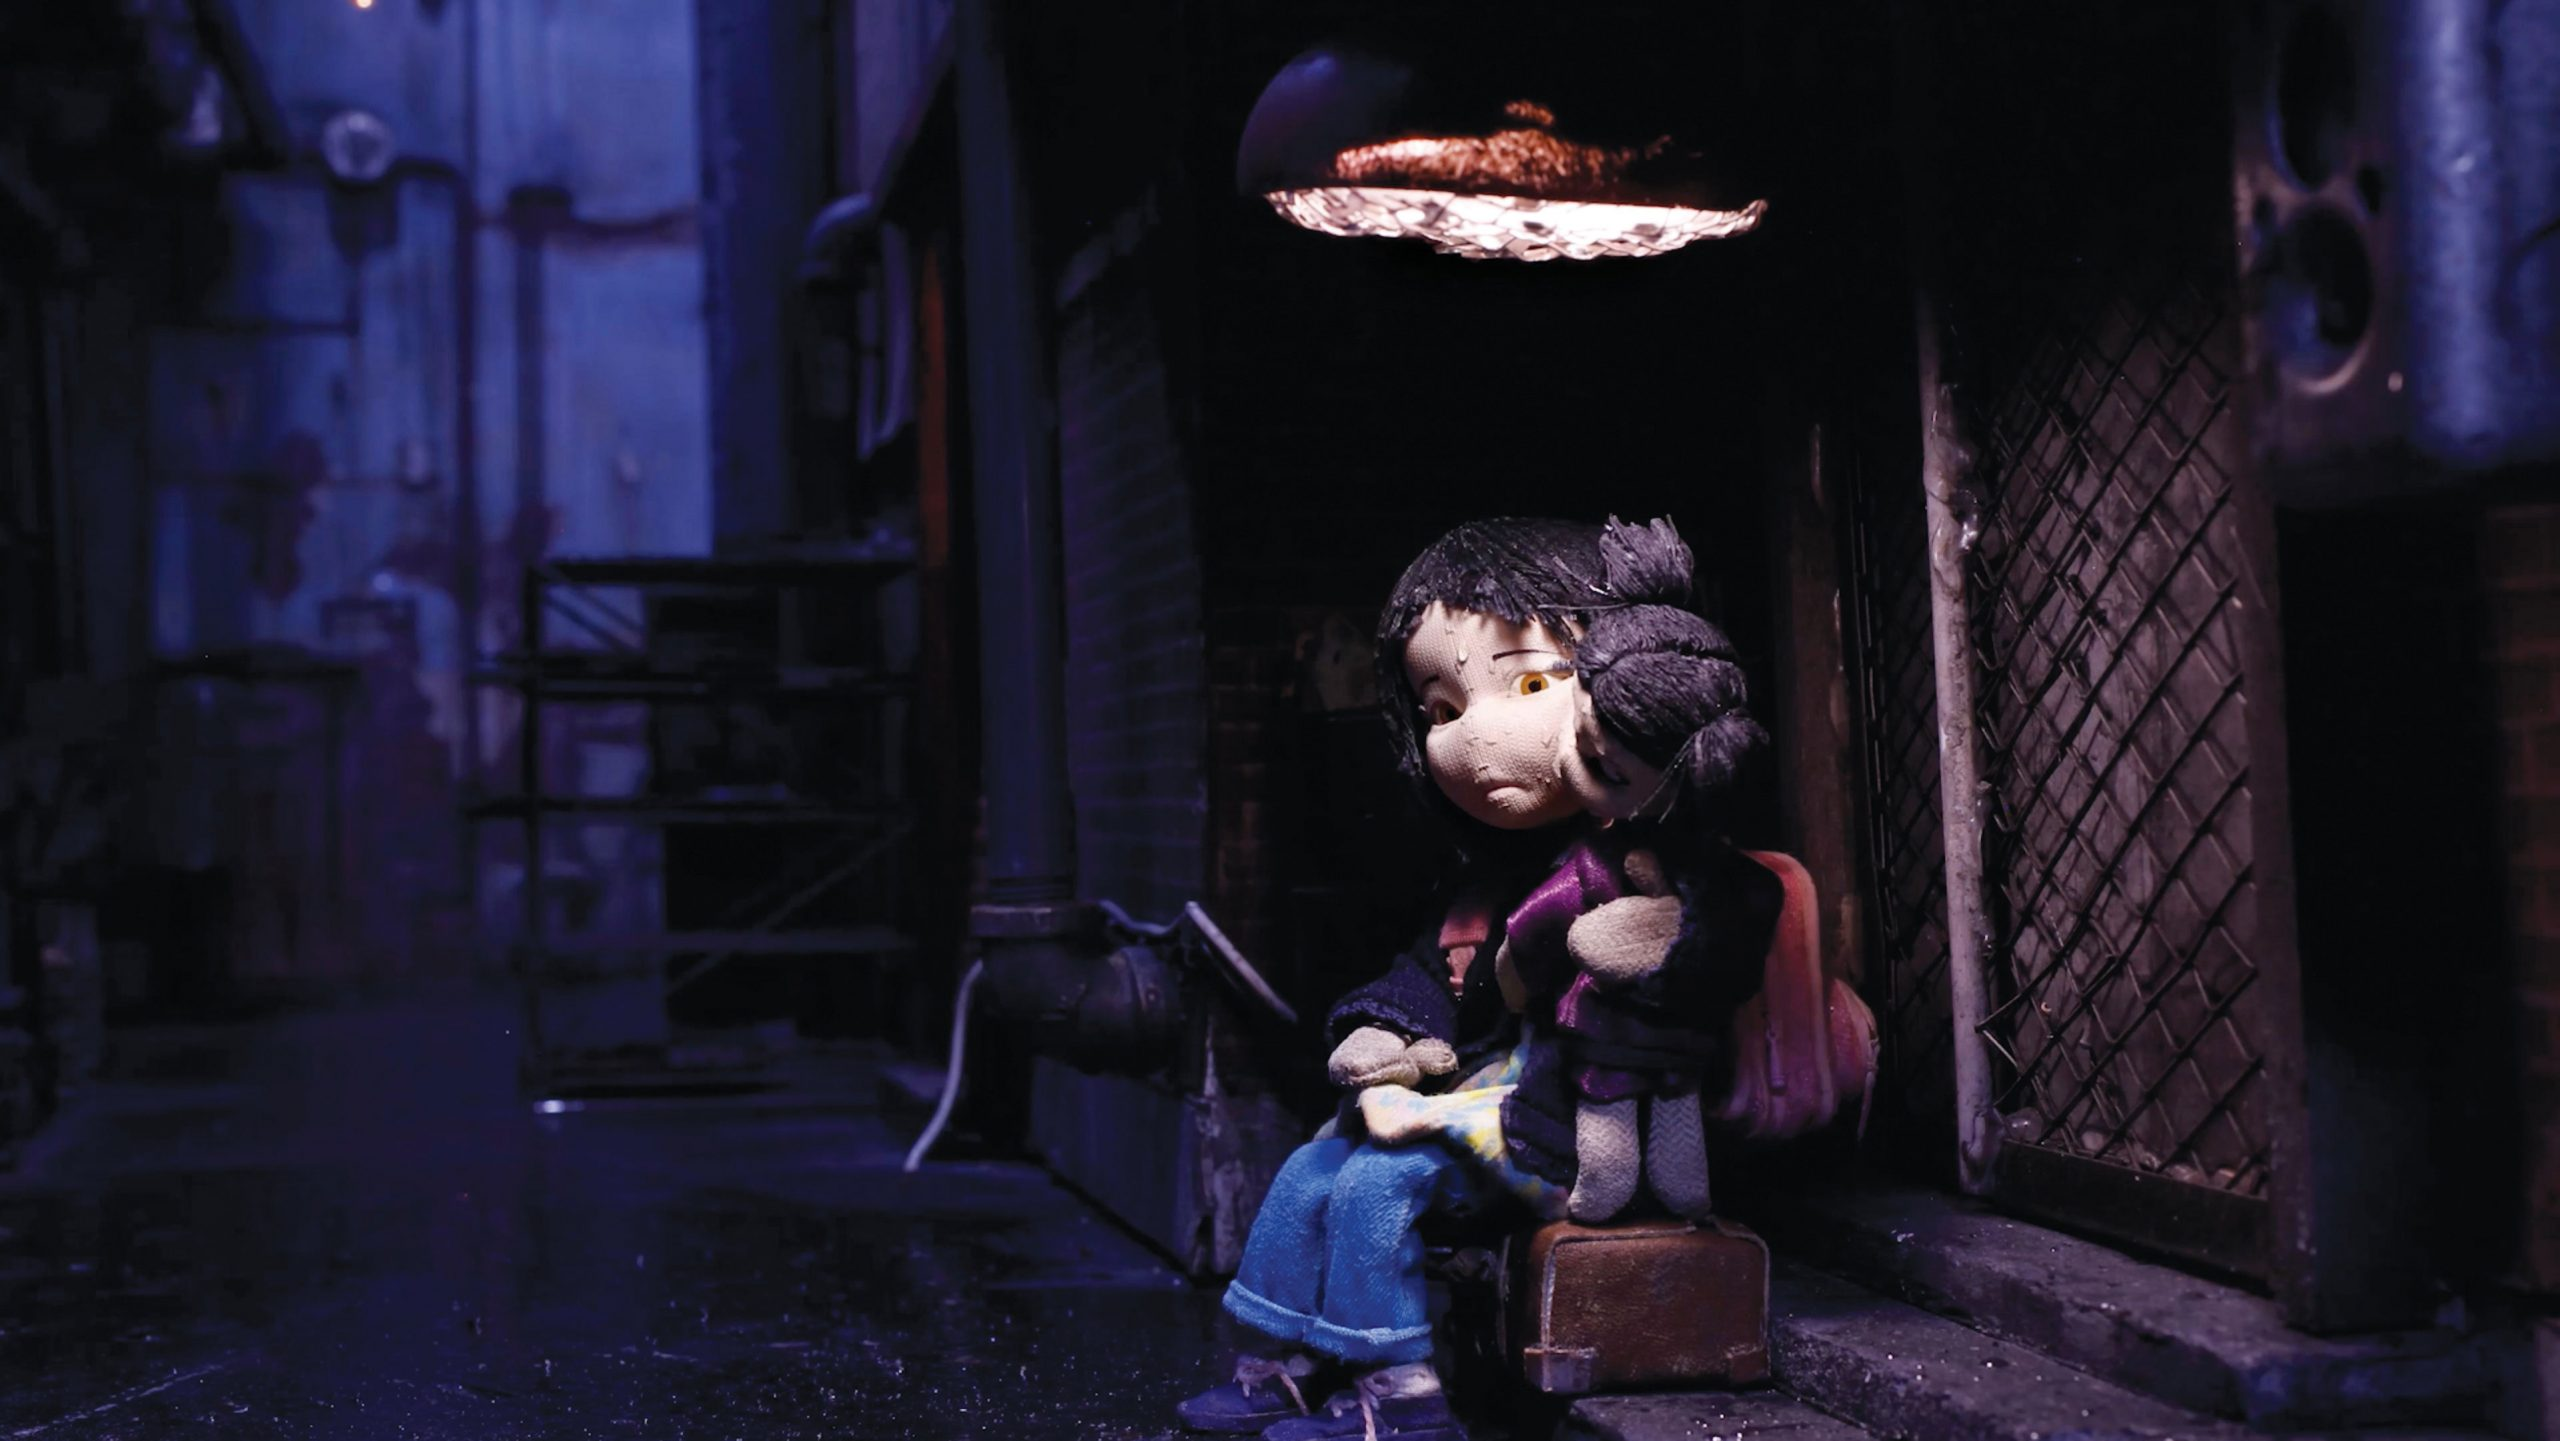 Rag-Doll-Still-01_Yingying-sits-in-dark-with-her-doll